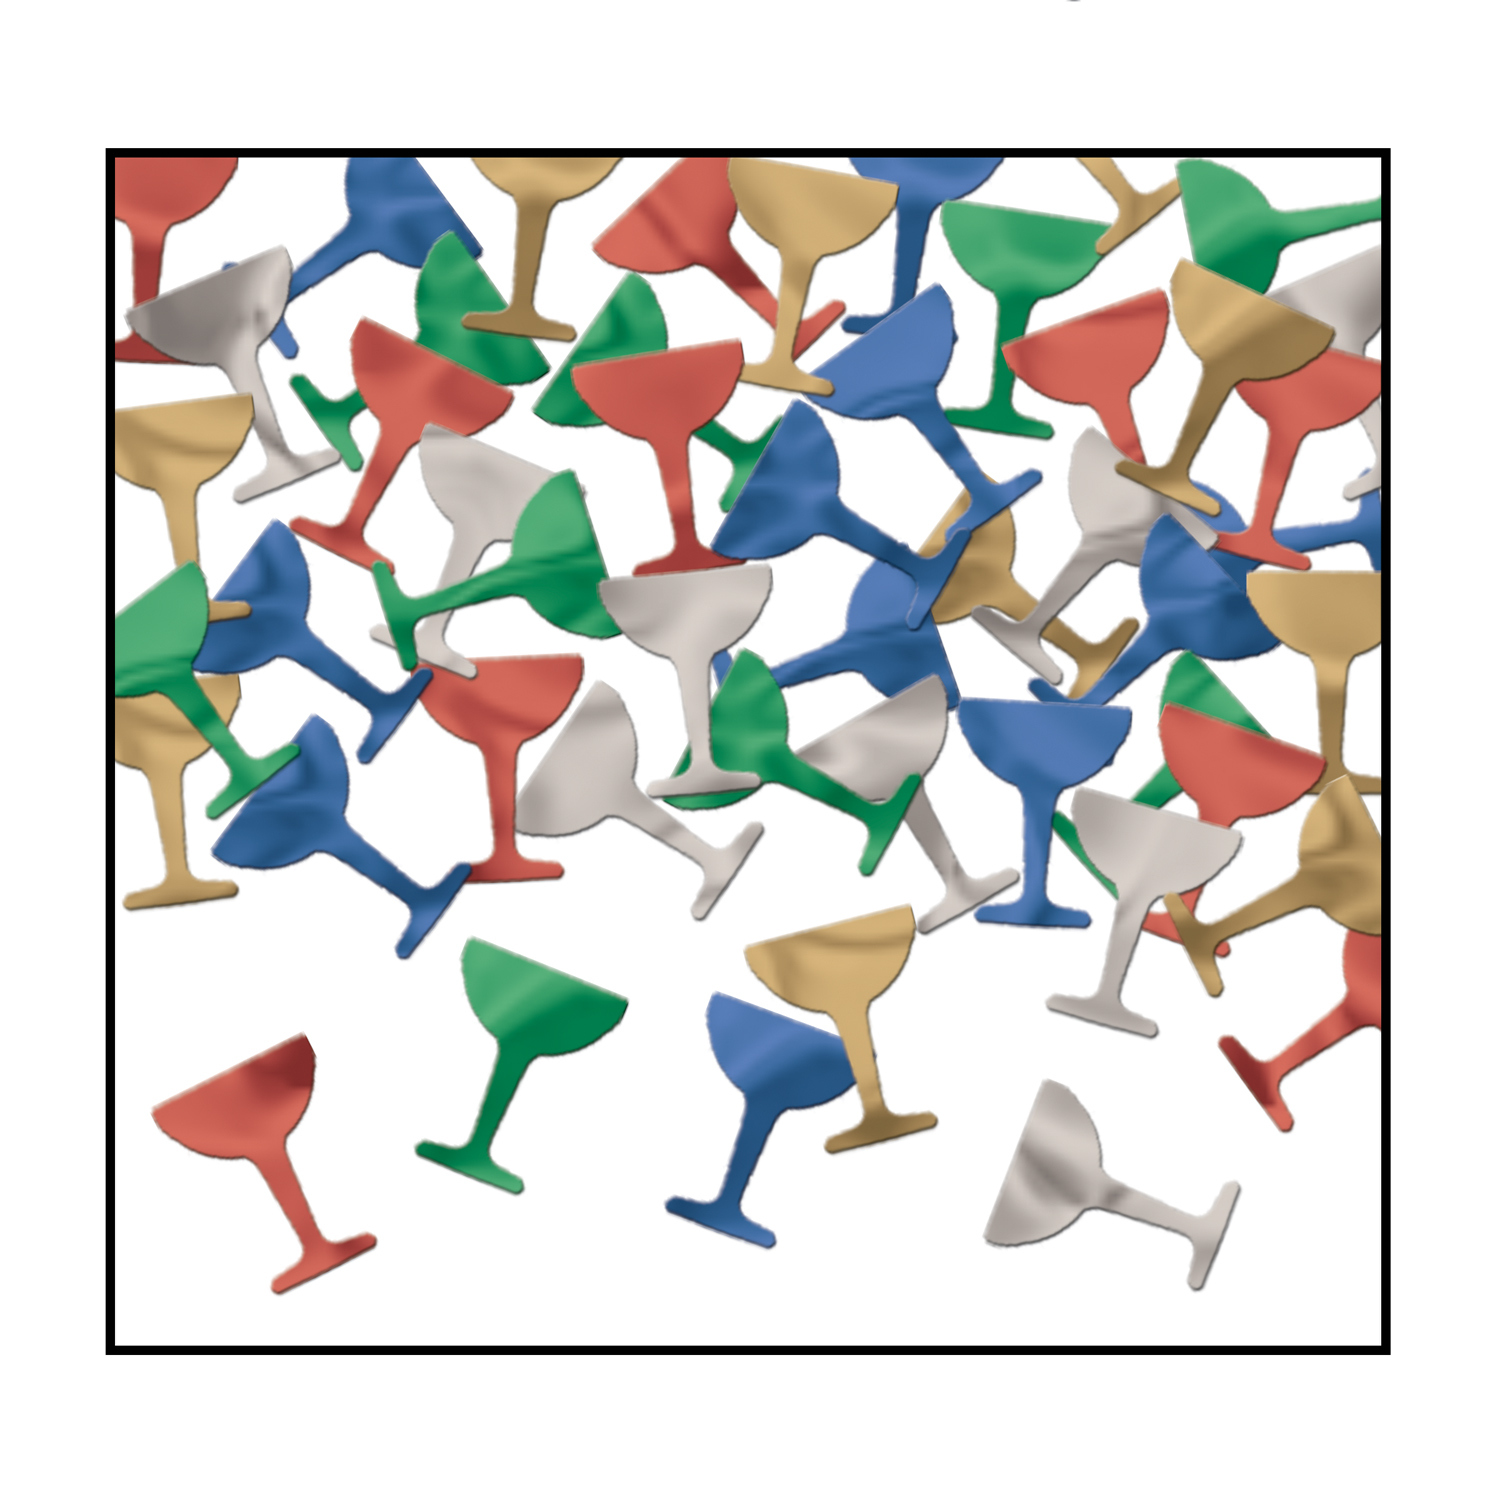 Goblet confetti packaged in assorted colors and made of metallic material.